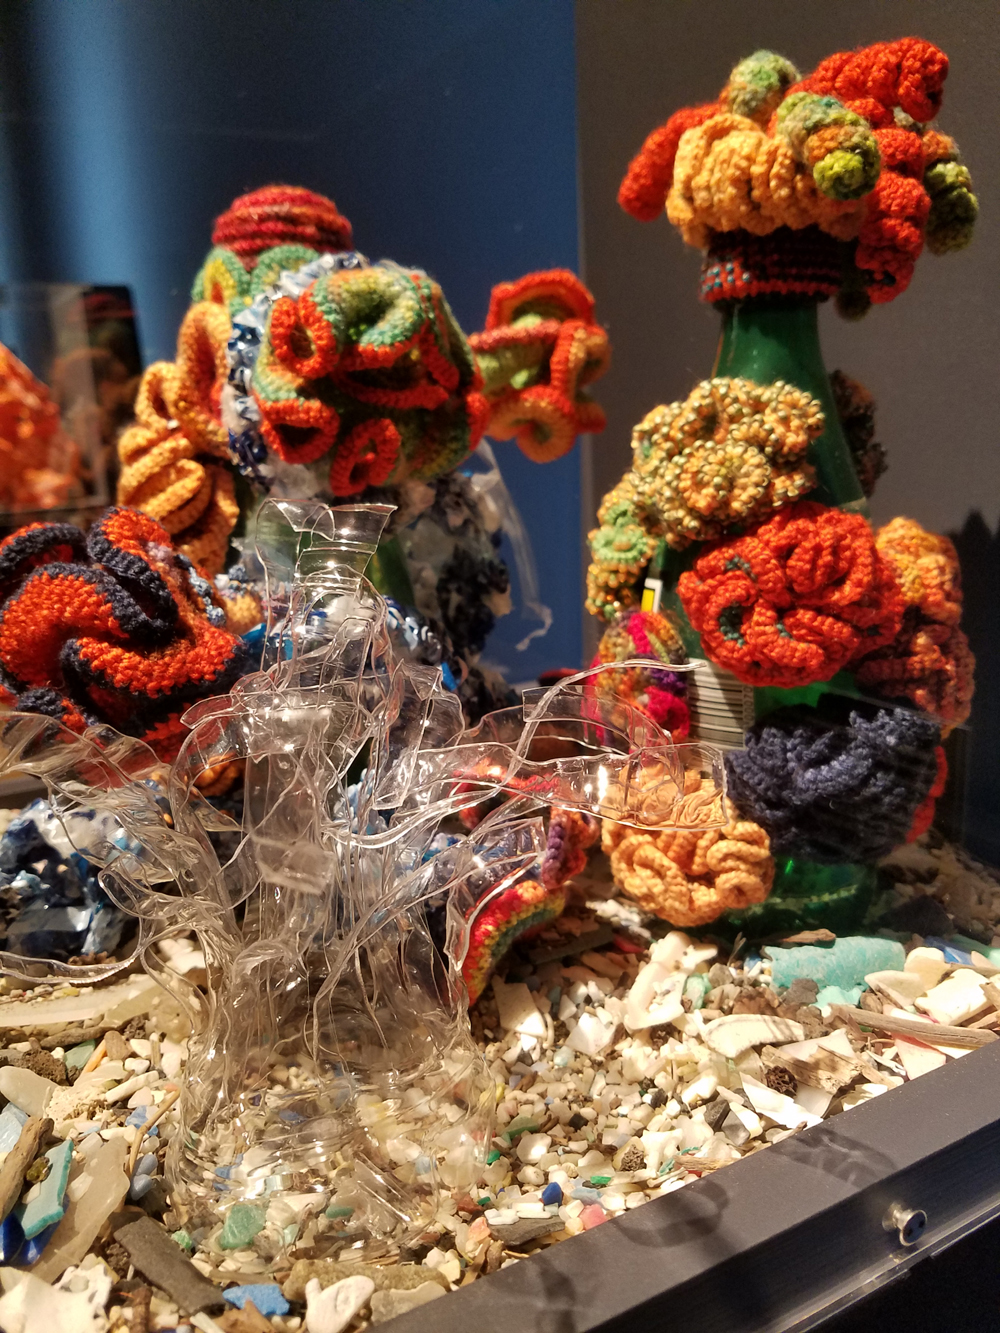 'Crochet Coral Reef: TOXIC SEAS' at the Museum of Arts and Design (MAD) in New York City